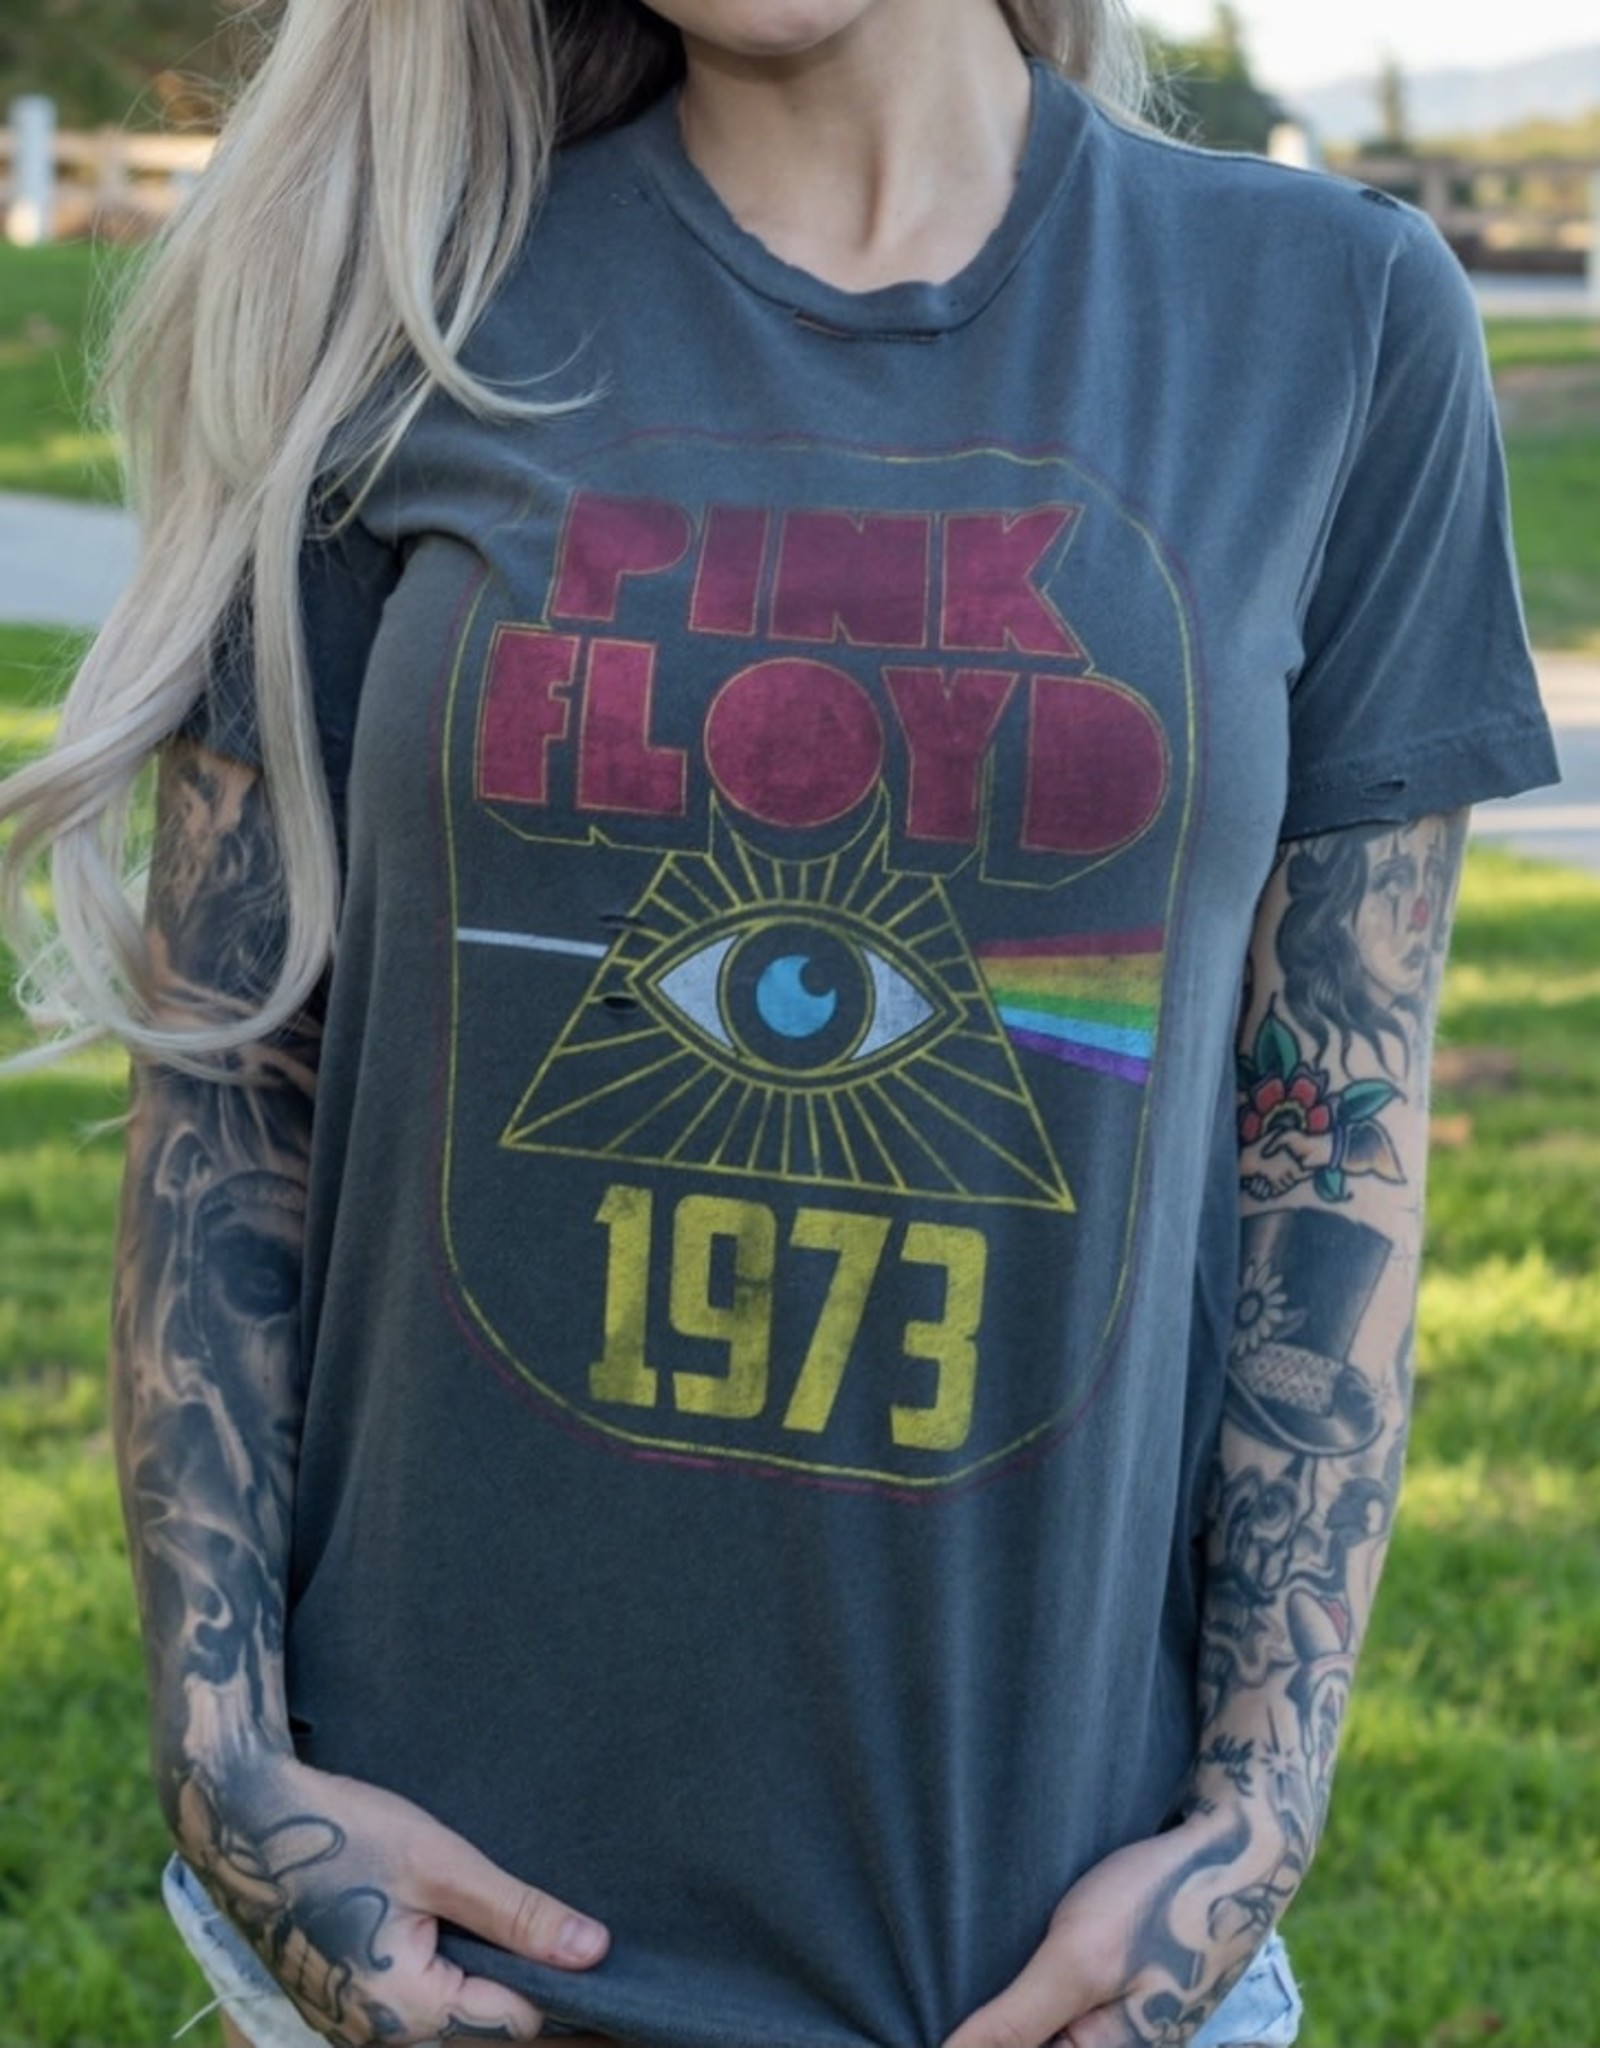 LeBLANC finds Vintage Tee Pink Floyd '73 Destroyed Tee